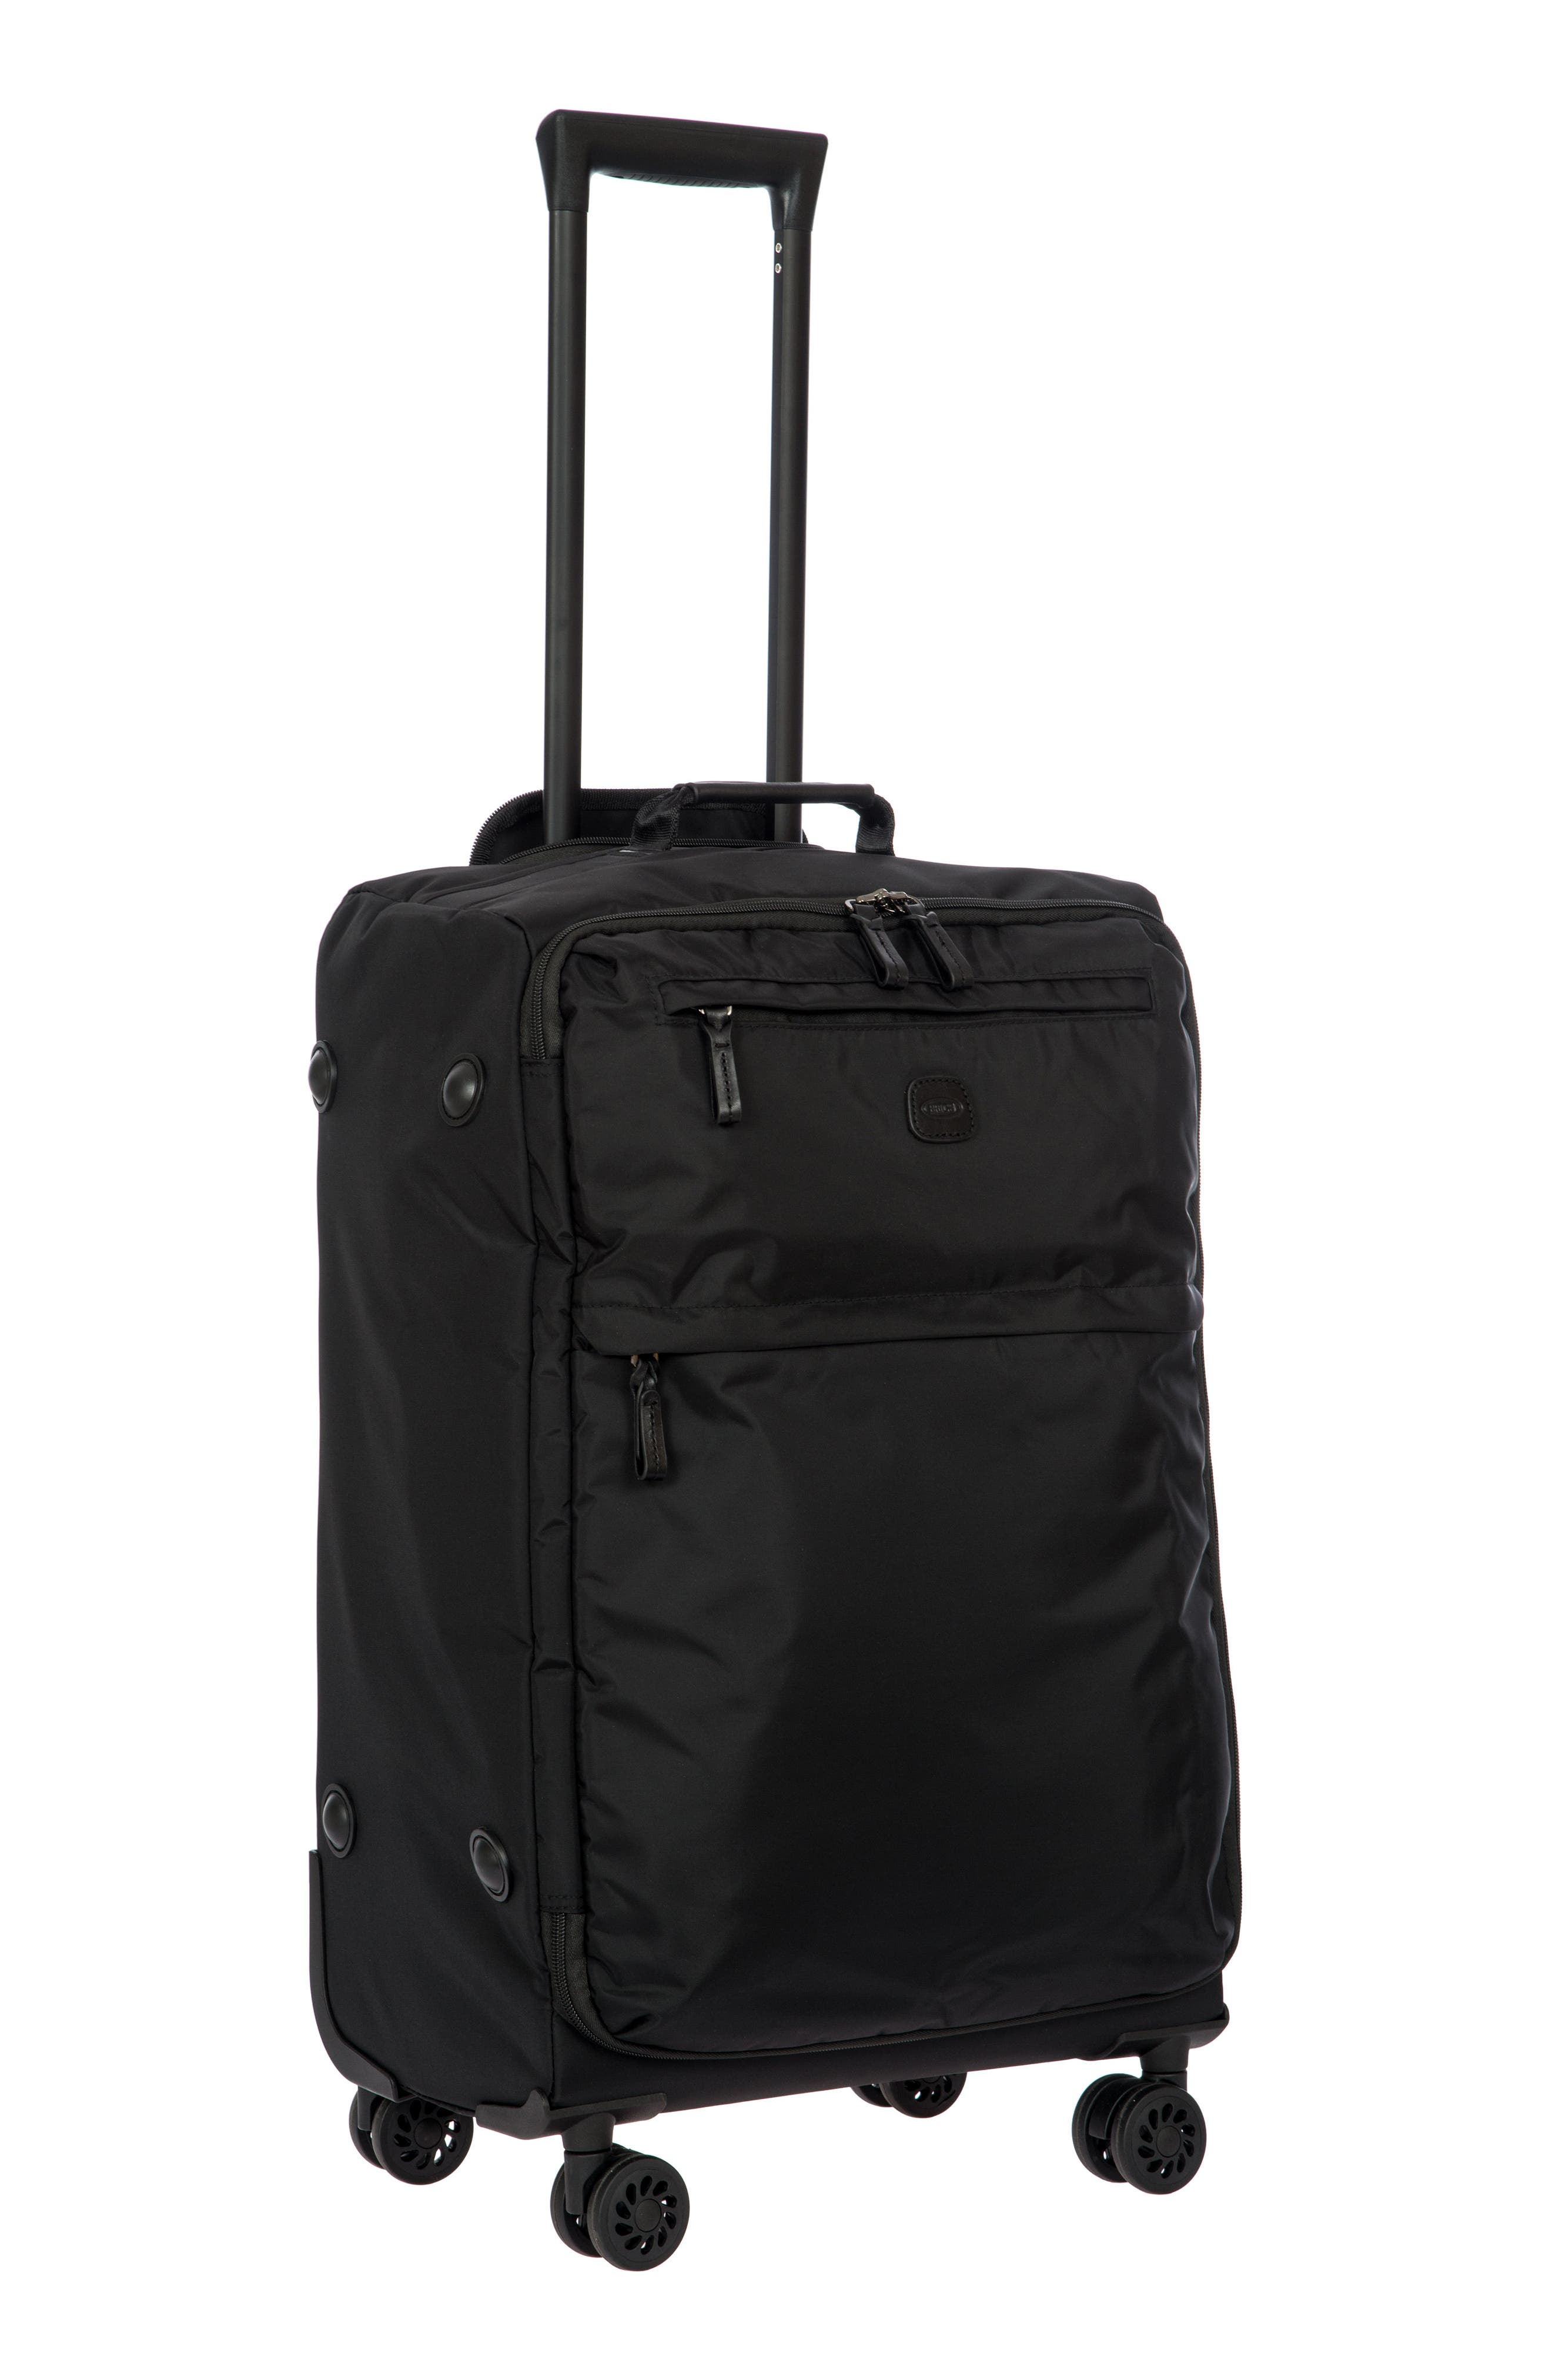 X-Bag 25-Inch Spinner Suitcase,                             Alternate thumbnail 7, color,                             Black/ Black